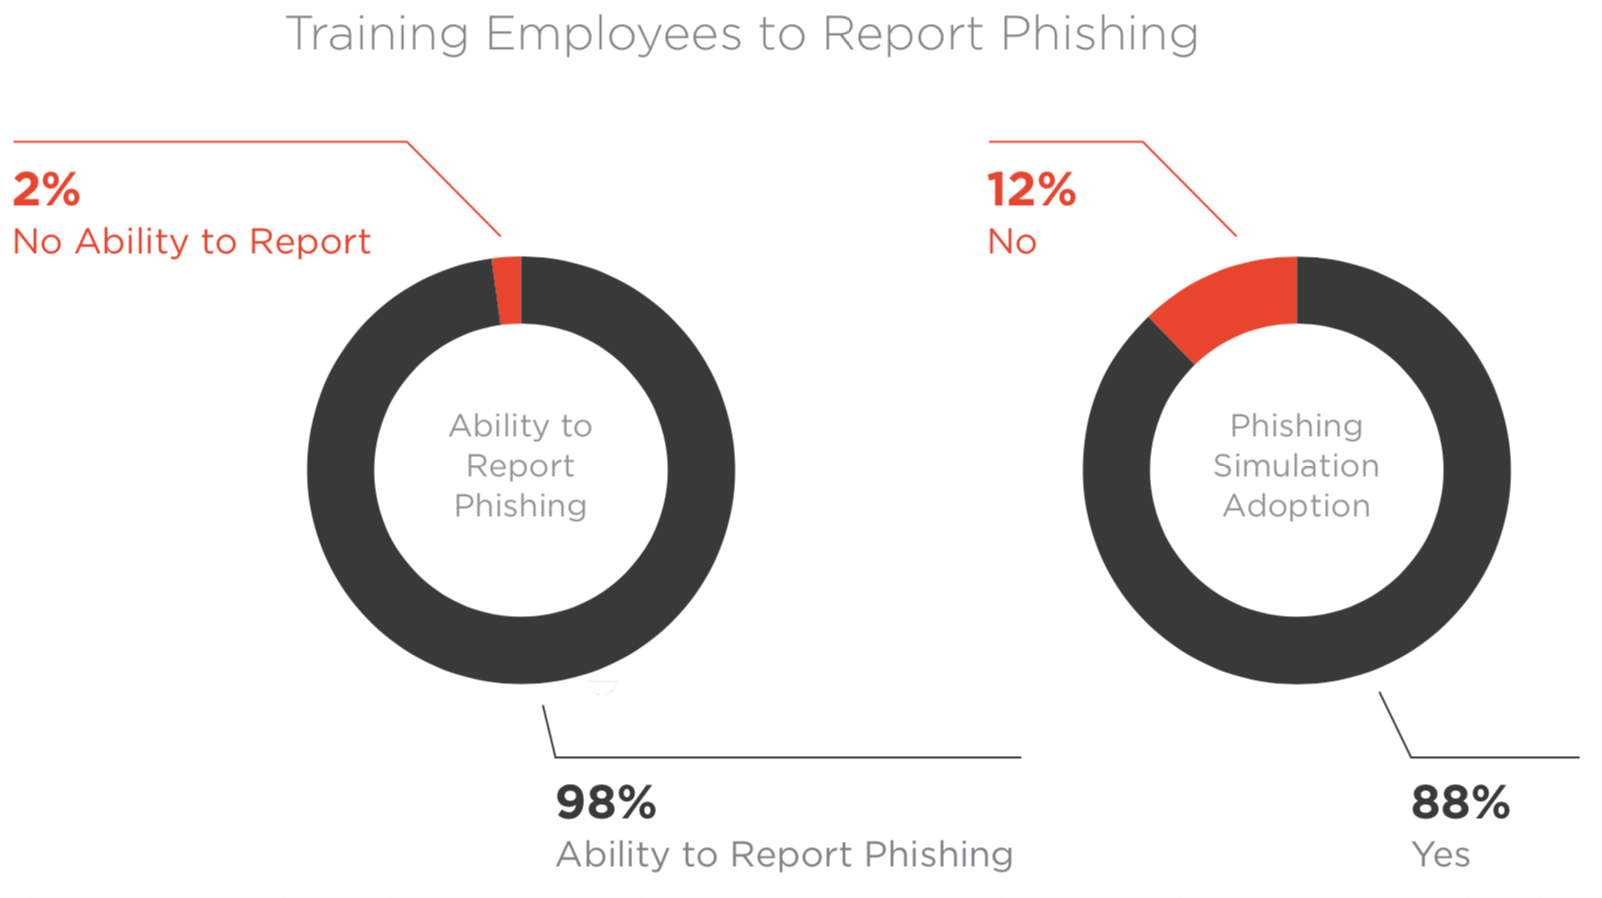 Q1 2019 Report: Email Fraud and Identity Deception Trends